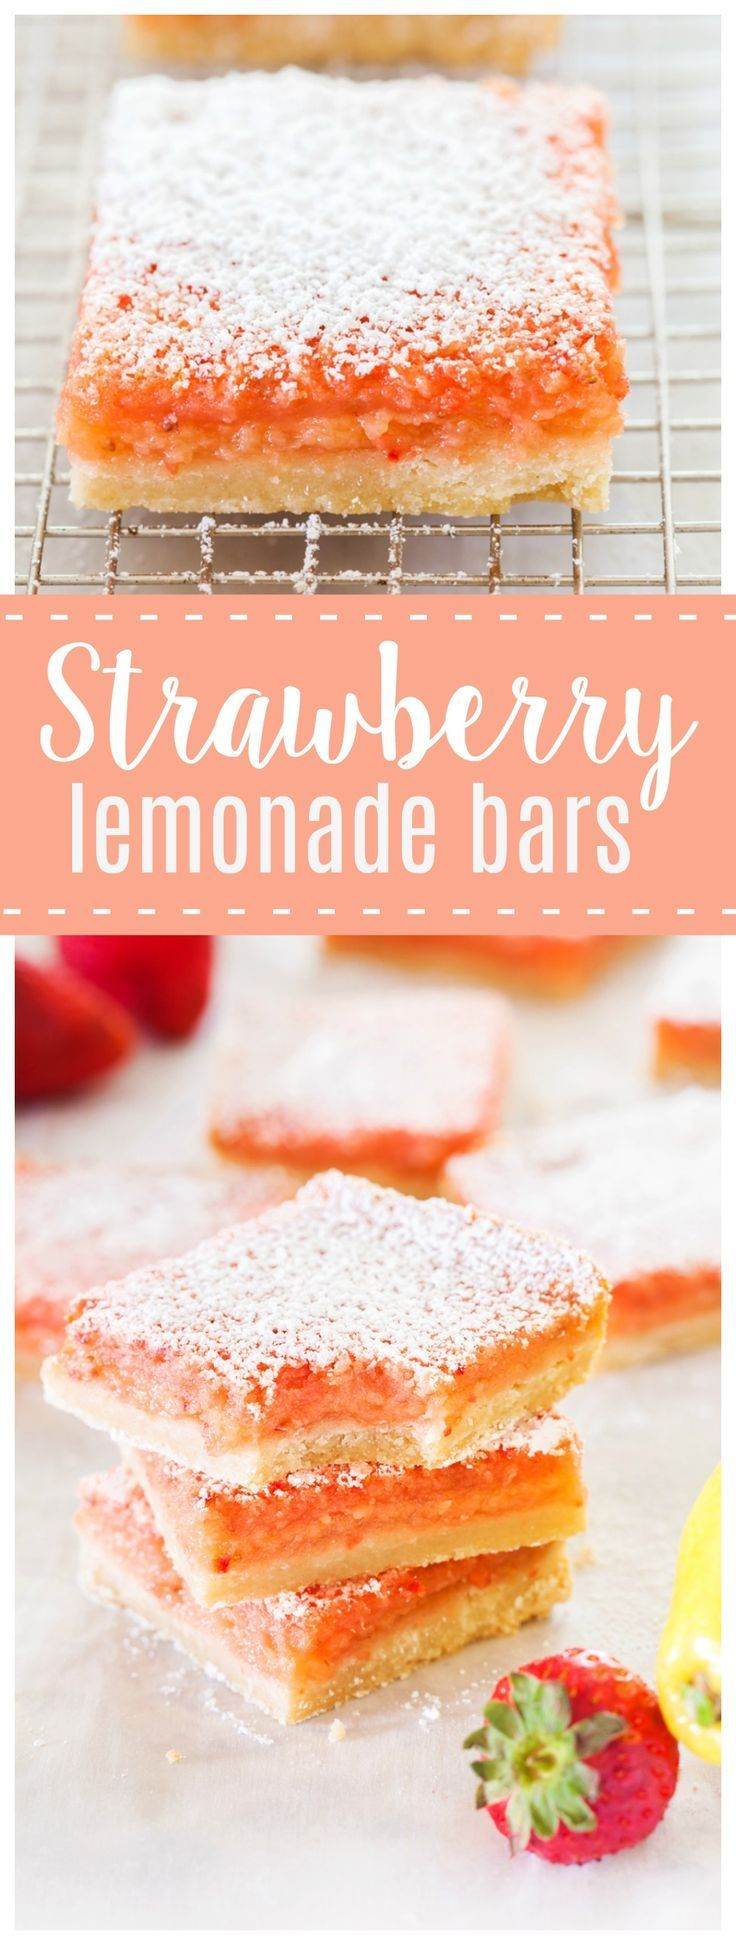 Strawberry Lemonade Bars | These Strawberry Lemonade Bars are a delicious bite of summer! Tangy lemonade and sweet strawberries make this a dessert you will be begging for seconds!